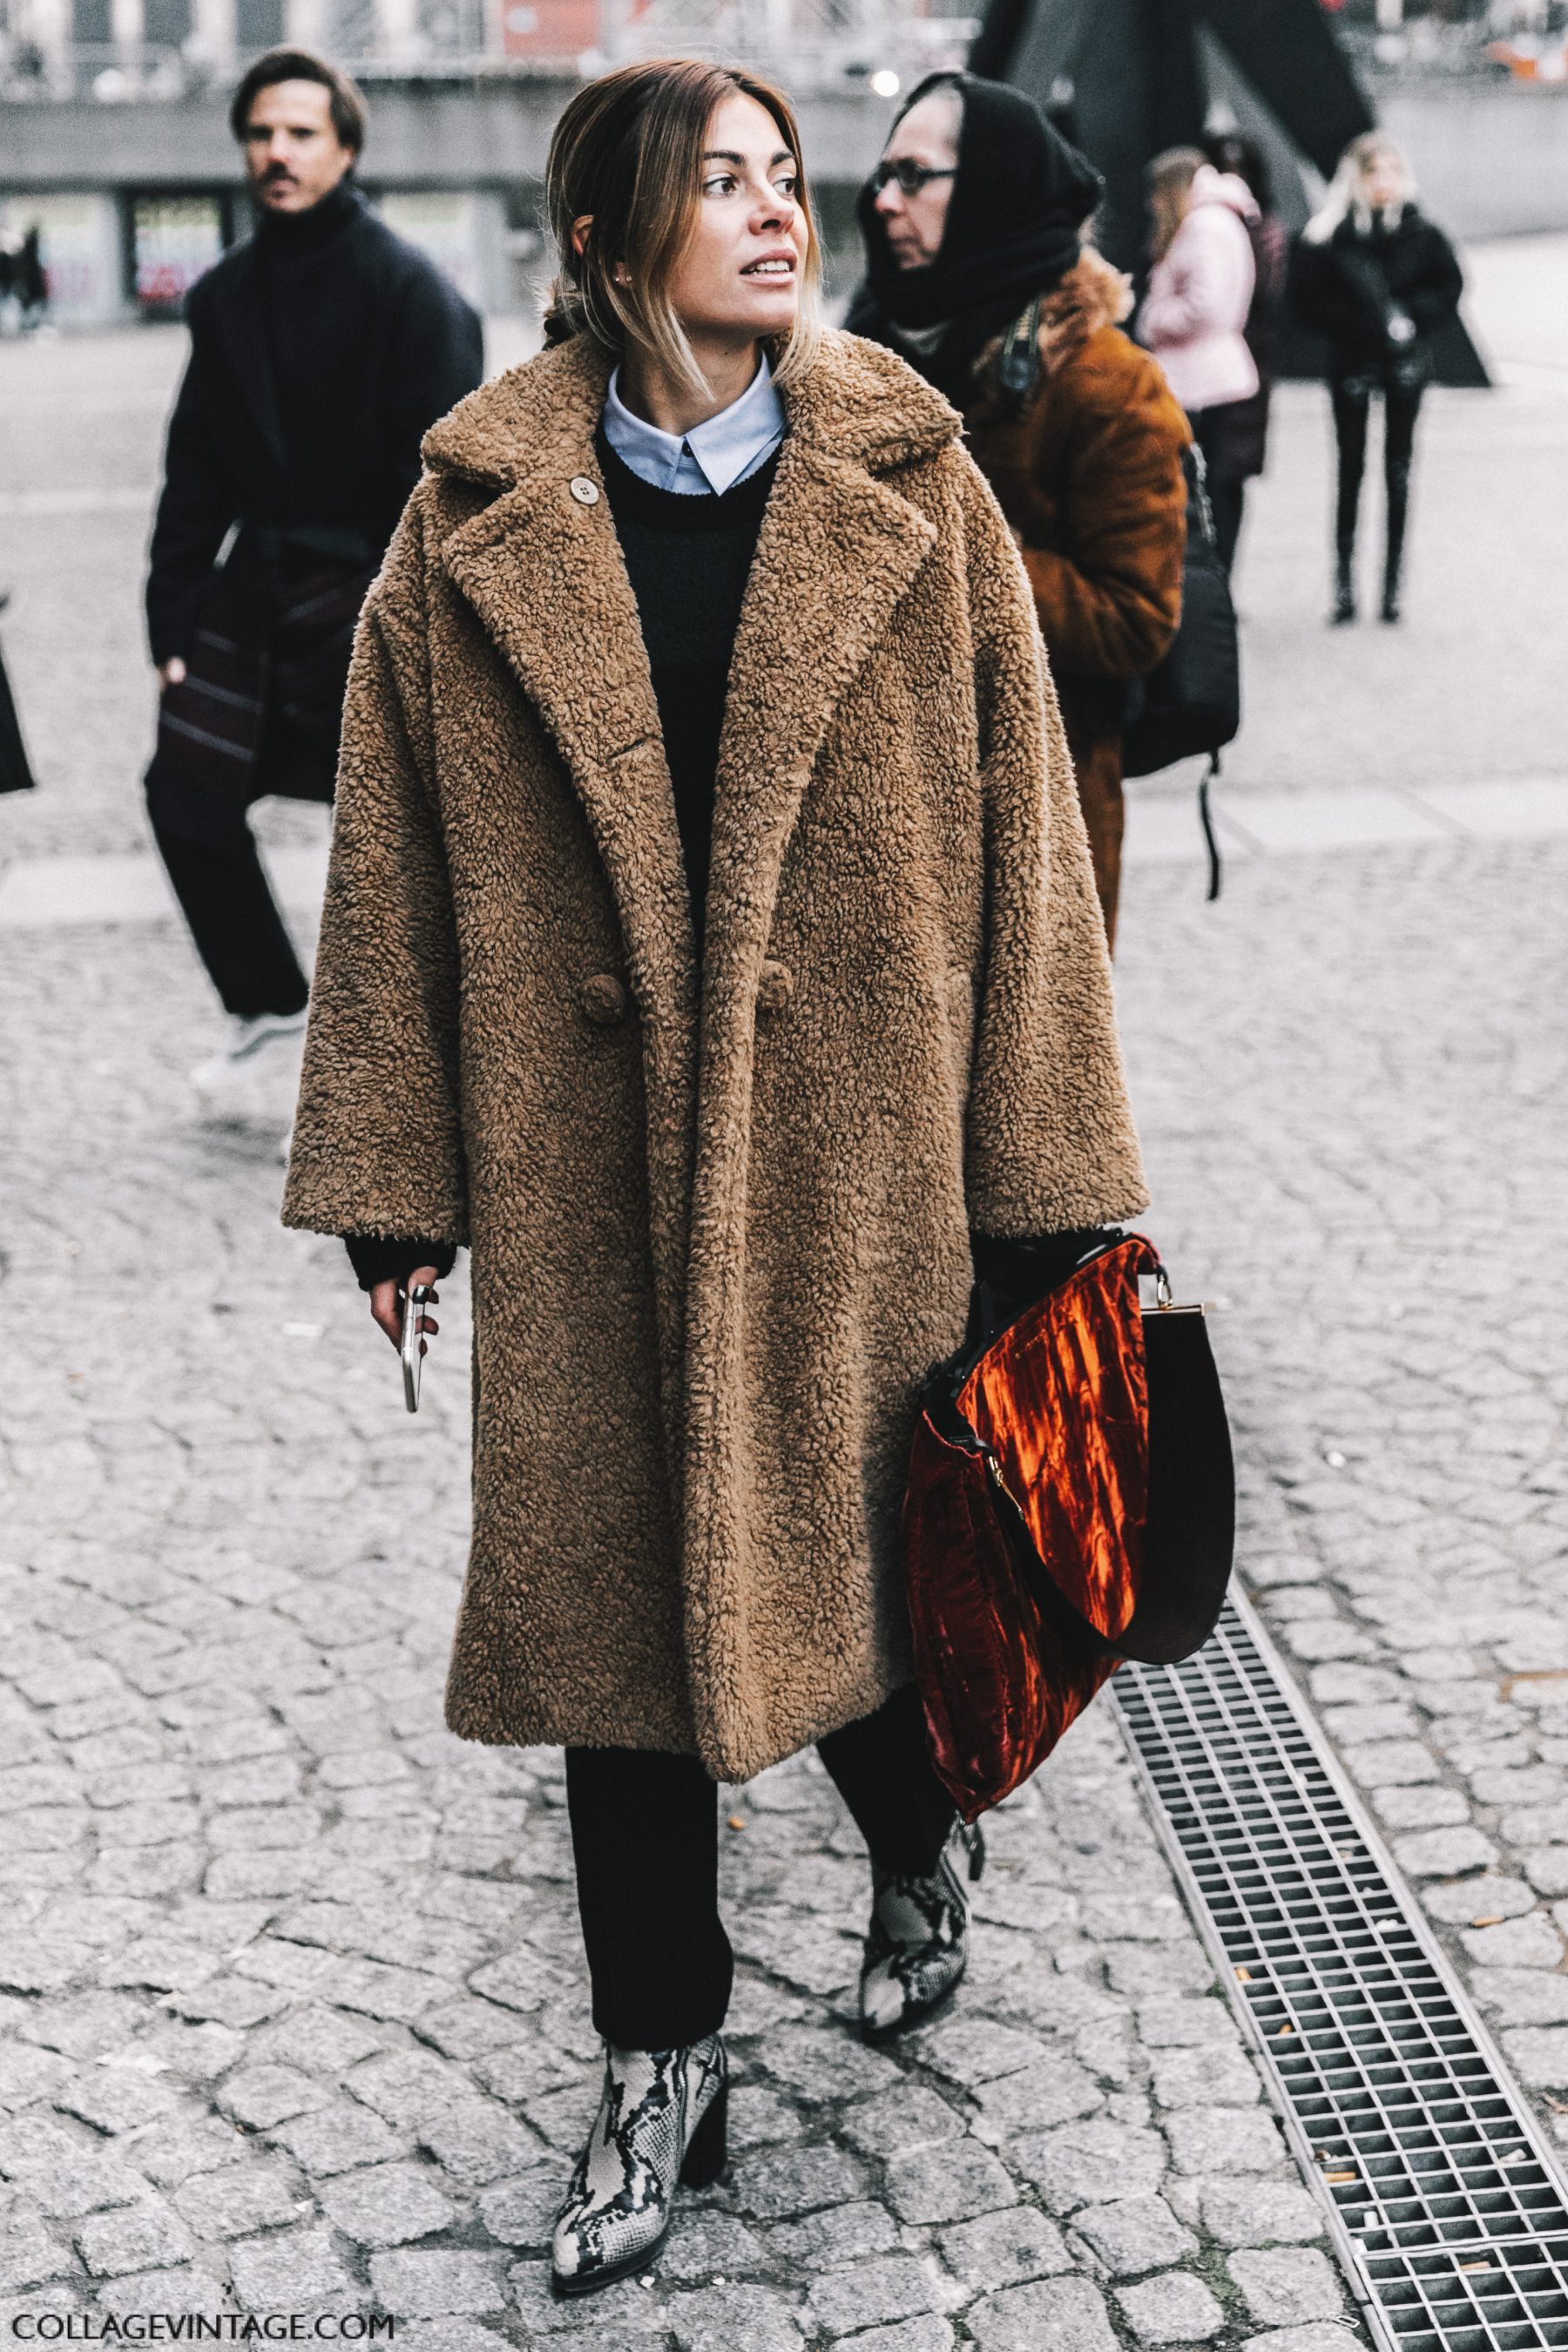 Couture_Paris_Fashion_Week-PFW-Street_Style-Chanel-Vetements-Outfit-Collage_Vintage-354-1800x2700